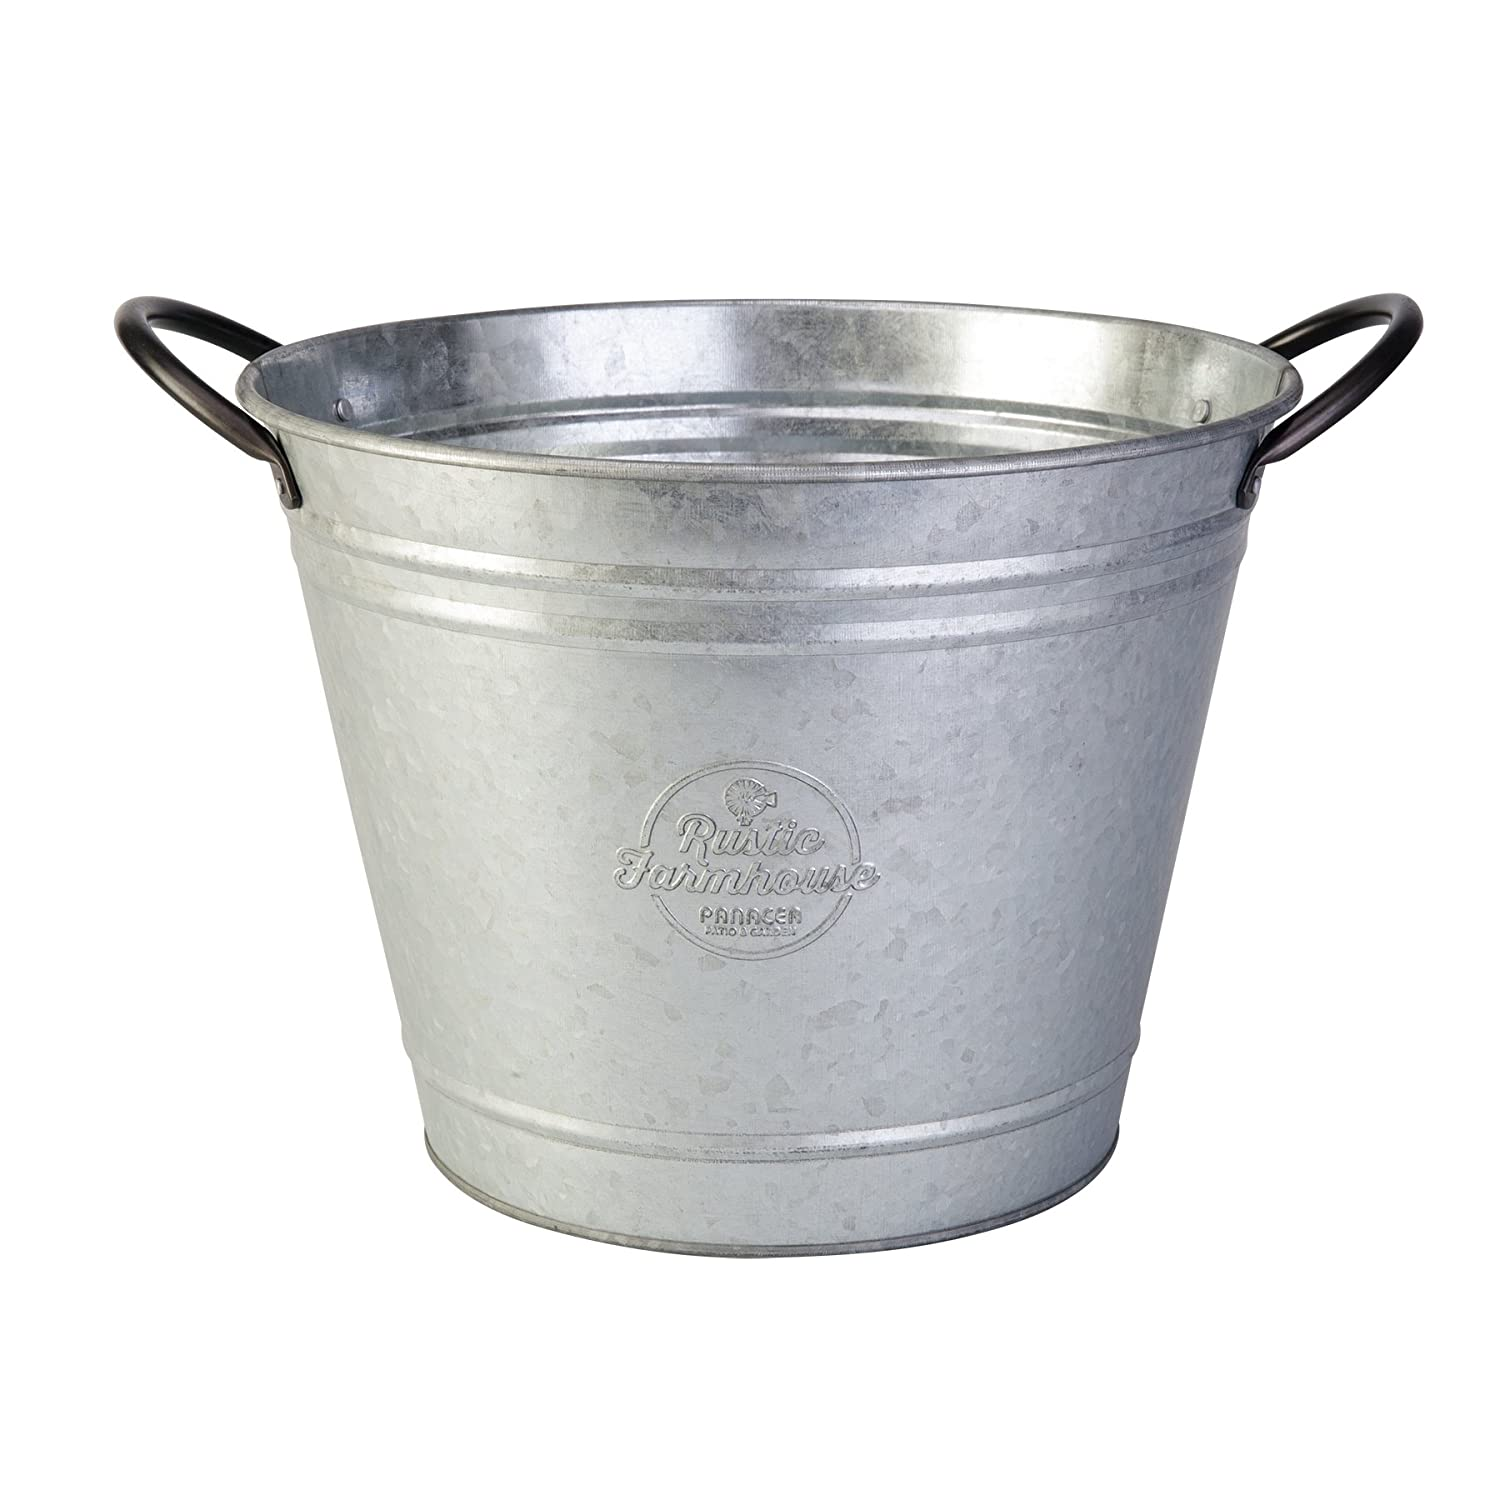 Panacea 83251, 10 Washtub Planter, Aged Galvanized Finish, 6 cs